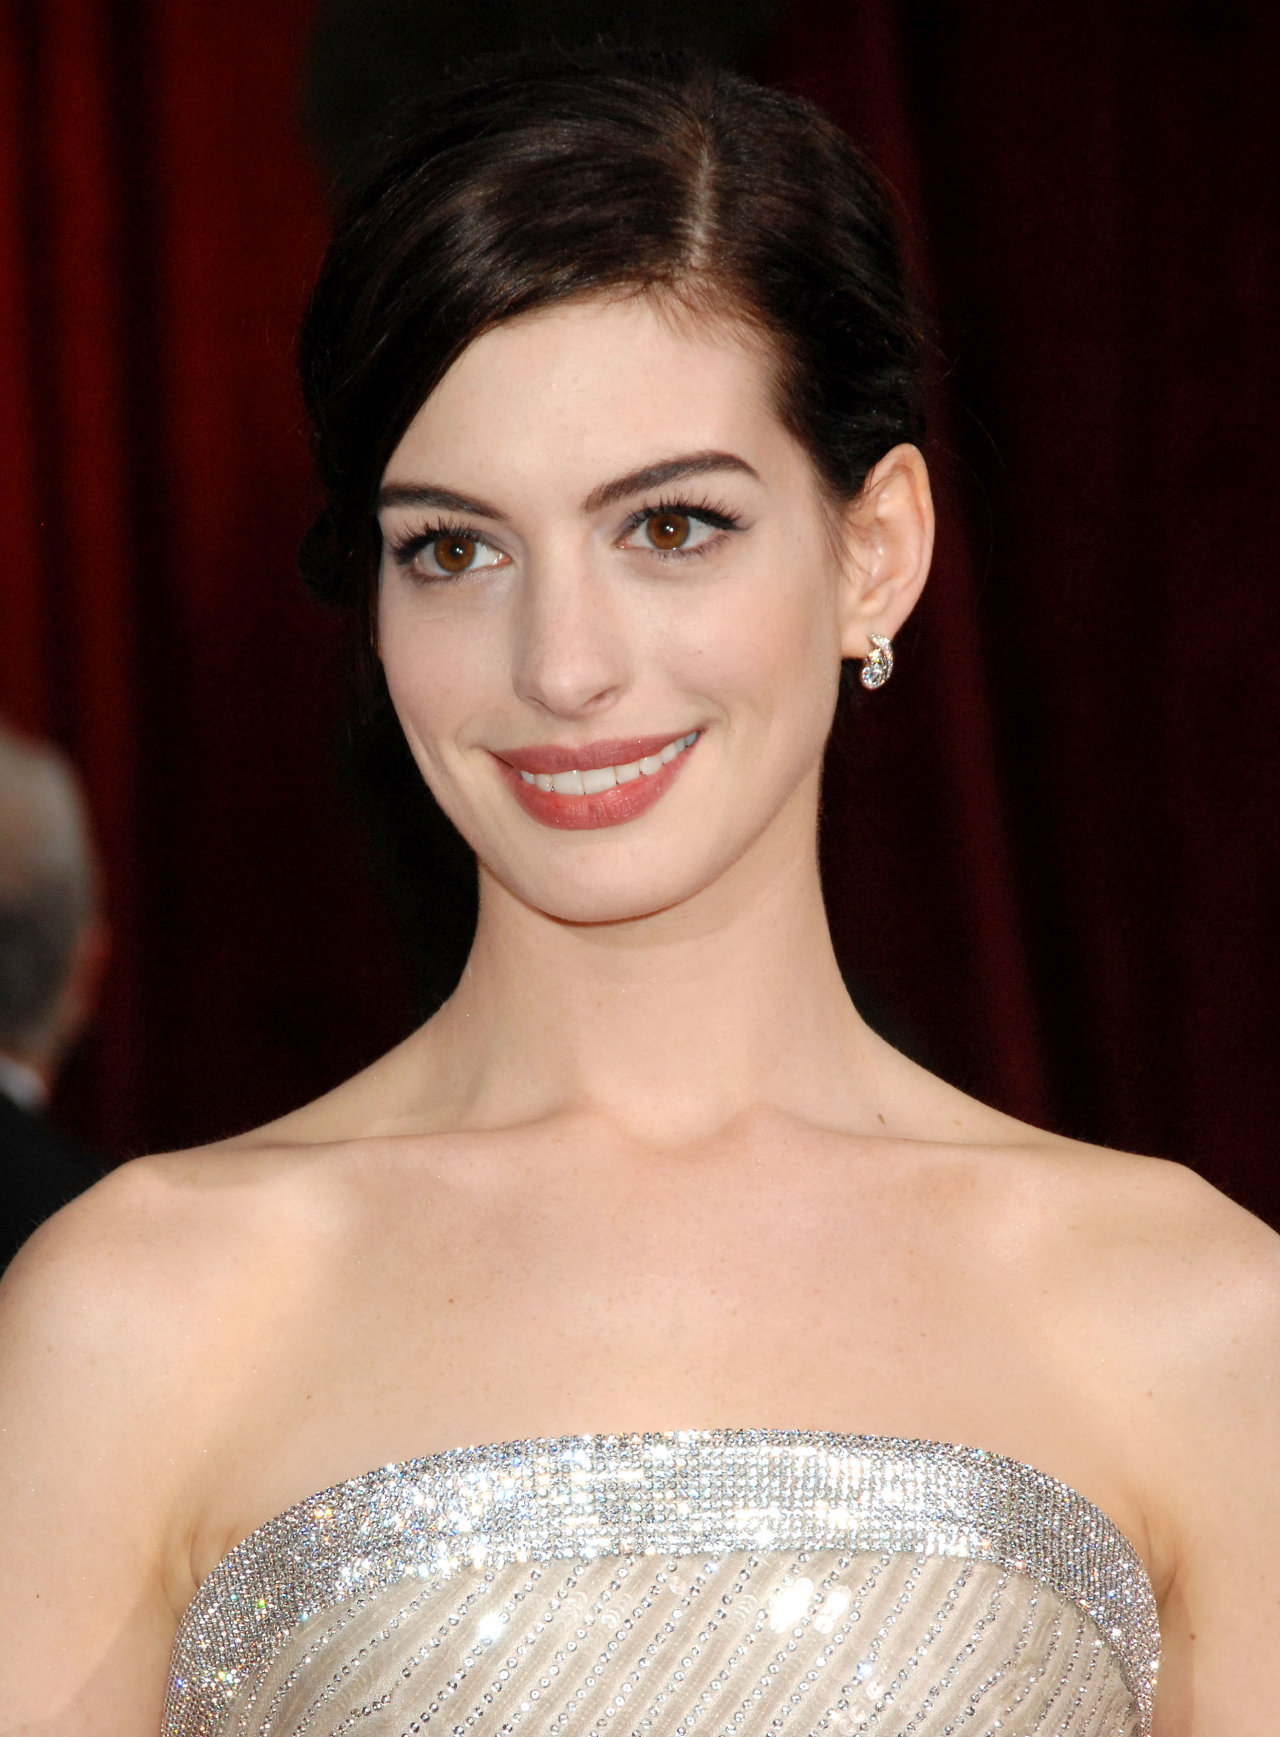 Anne Hathaway wallpapers (36104). Best Anne Hathaway pictures Anne Hathaway Shakespeare